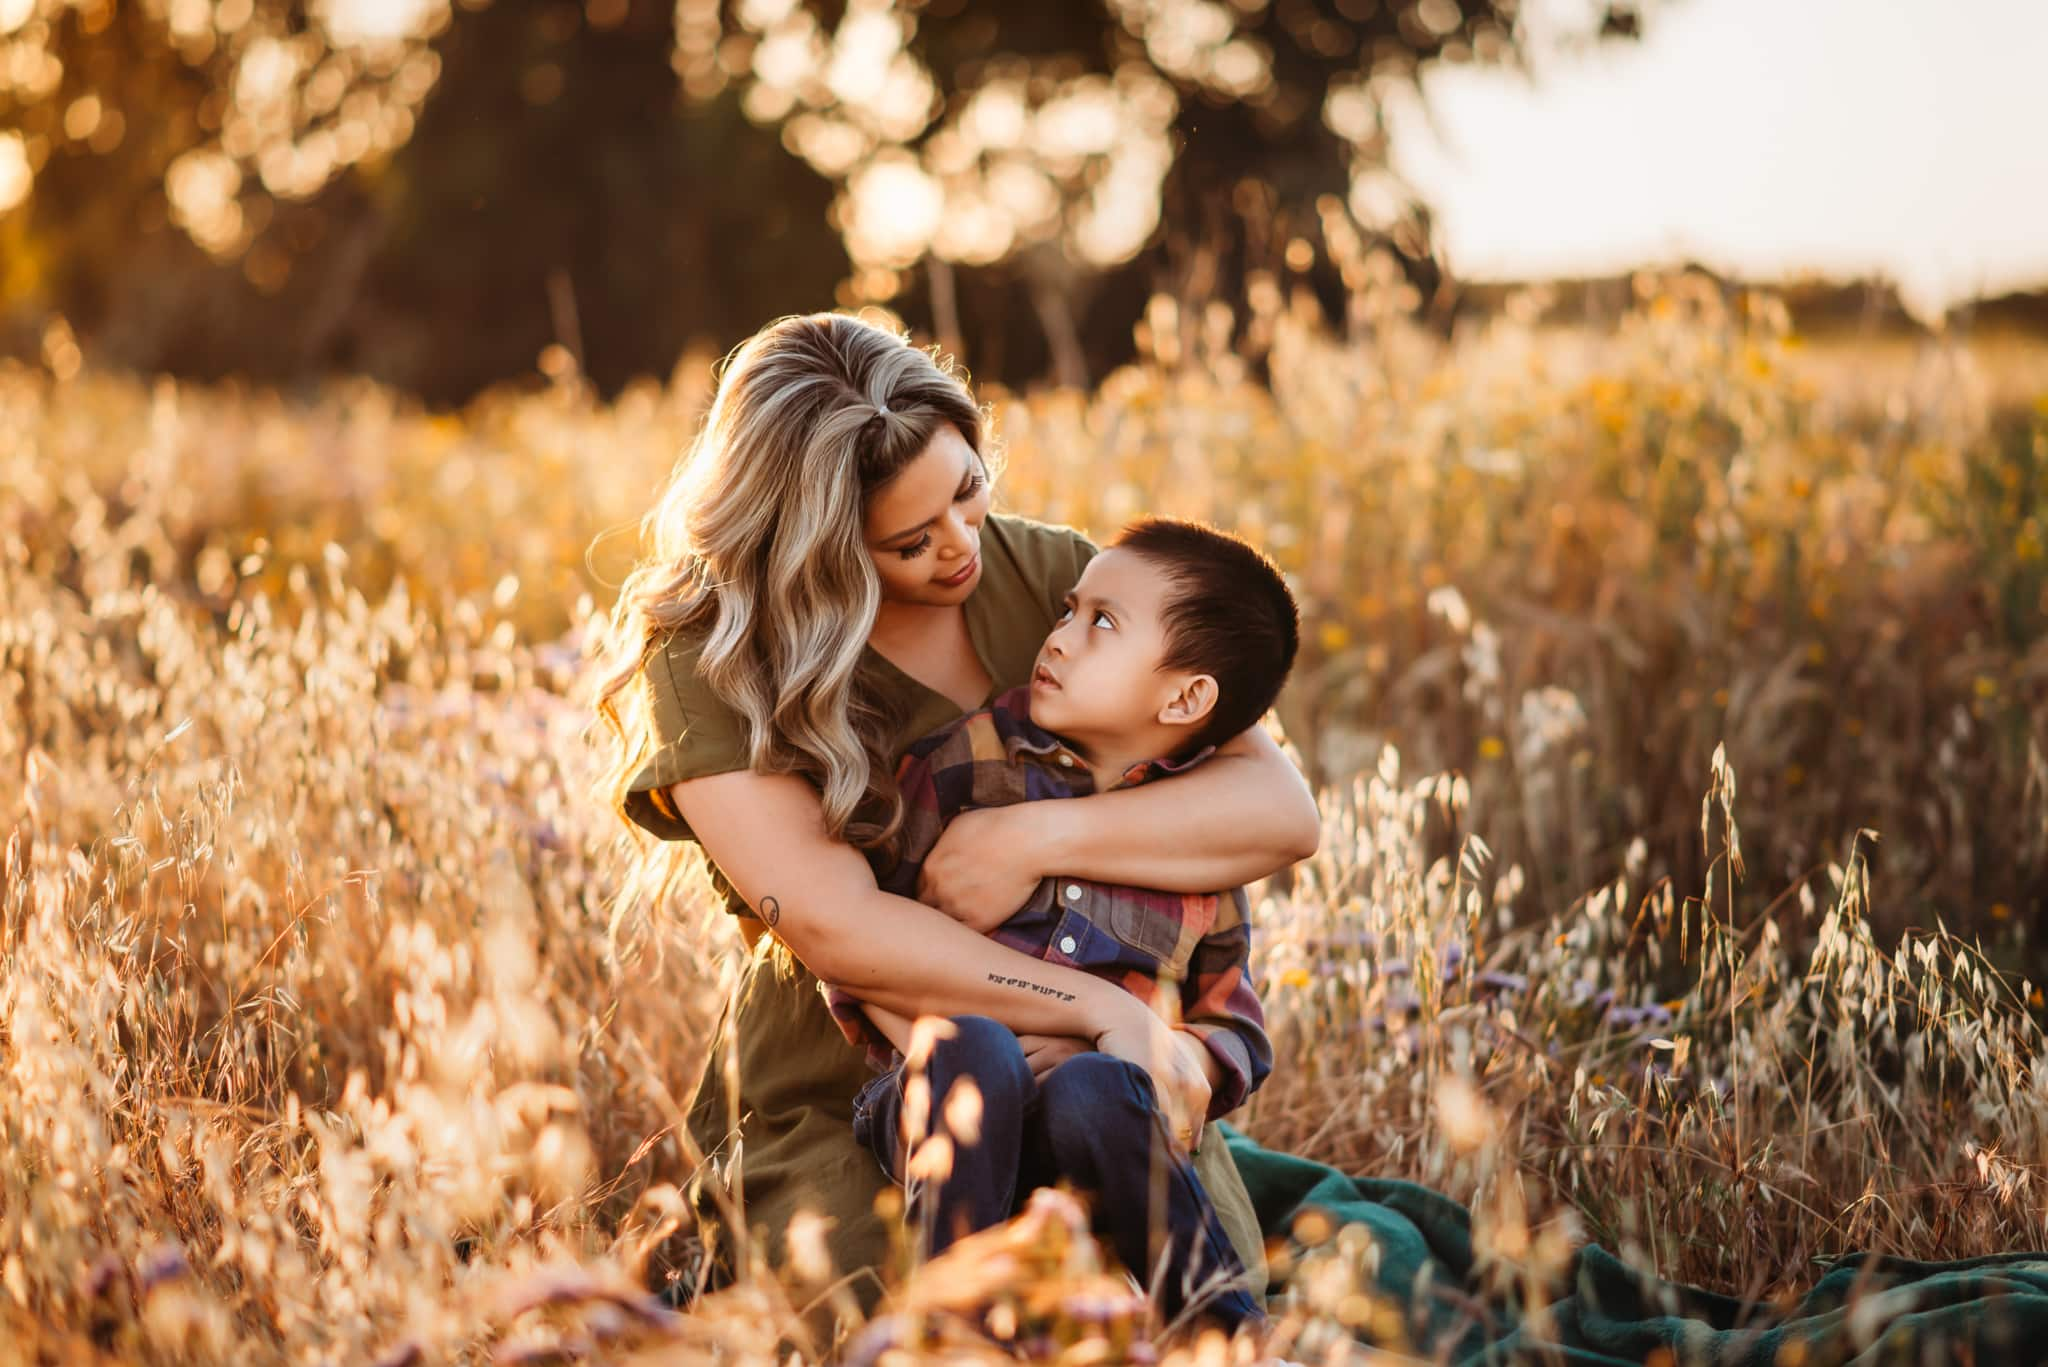 Mother and 5 year old son embraced together at Fiesta Island in a golden field